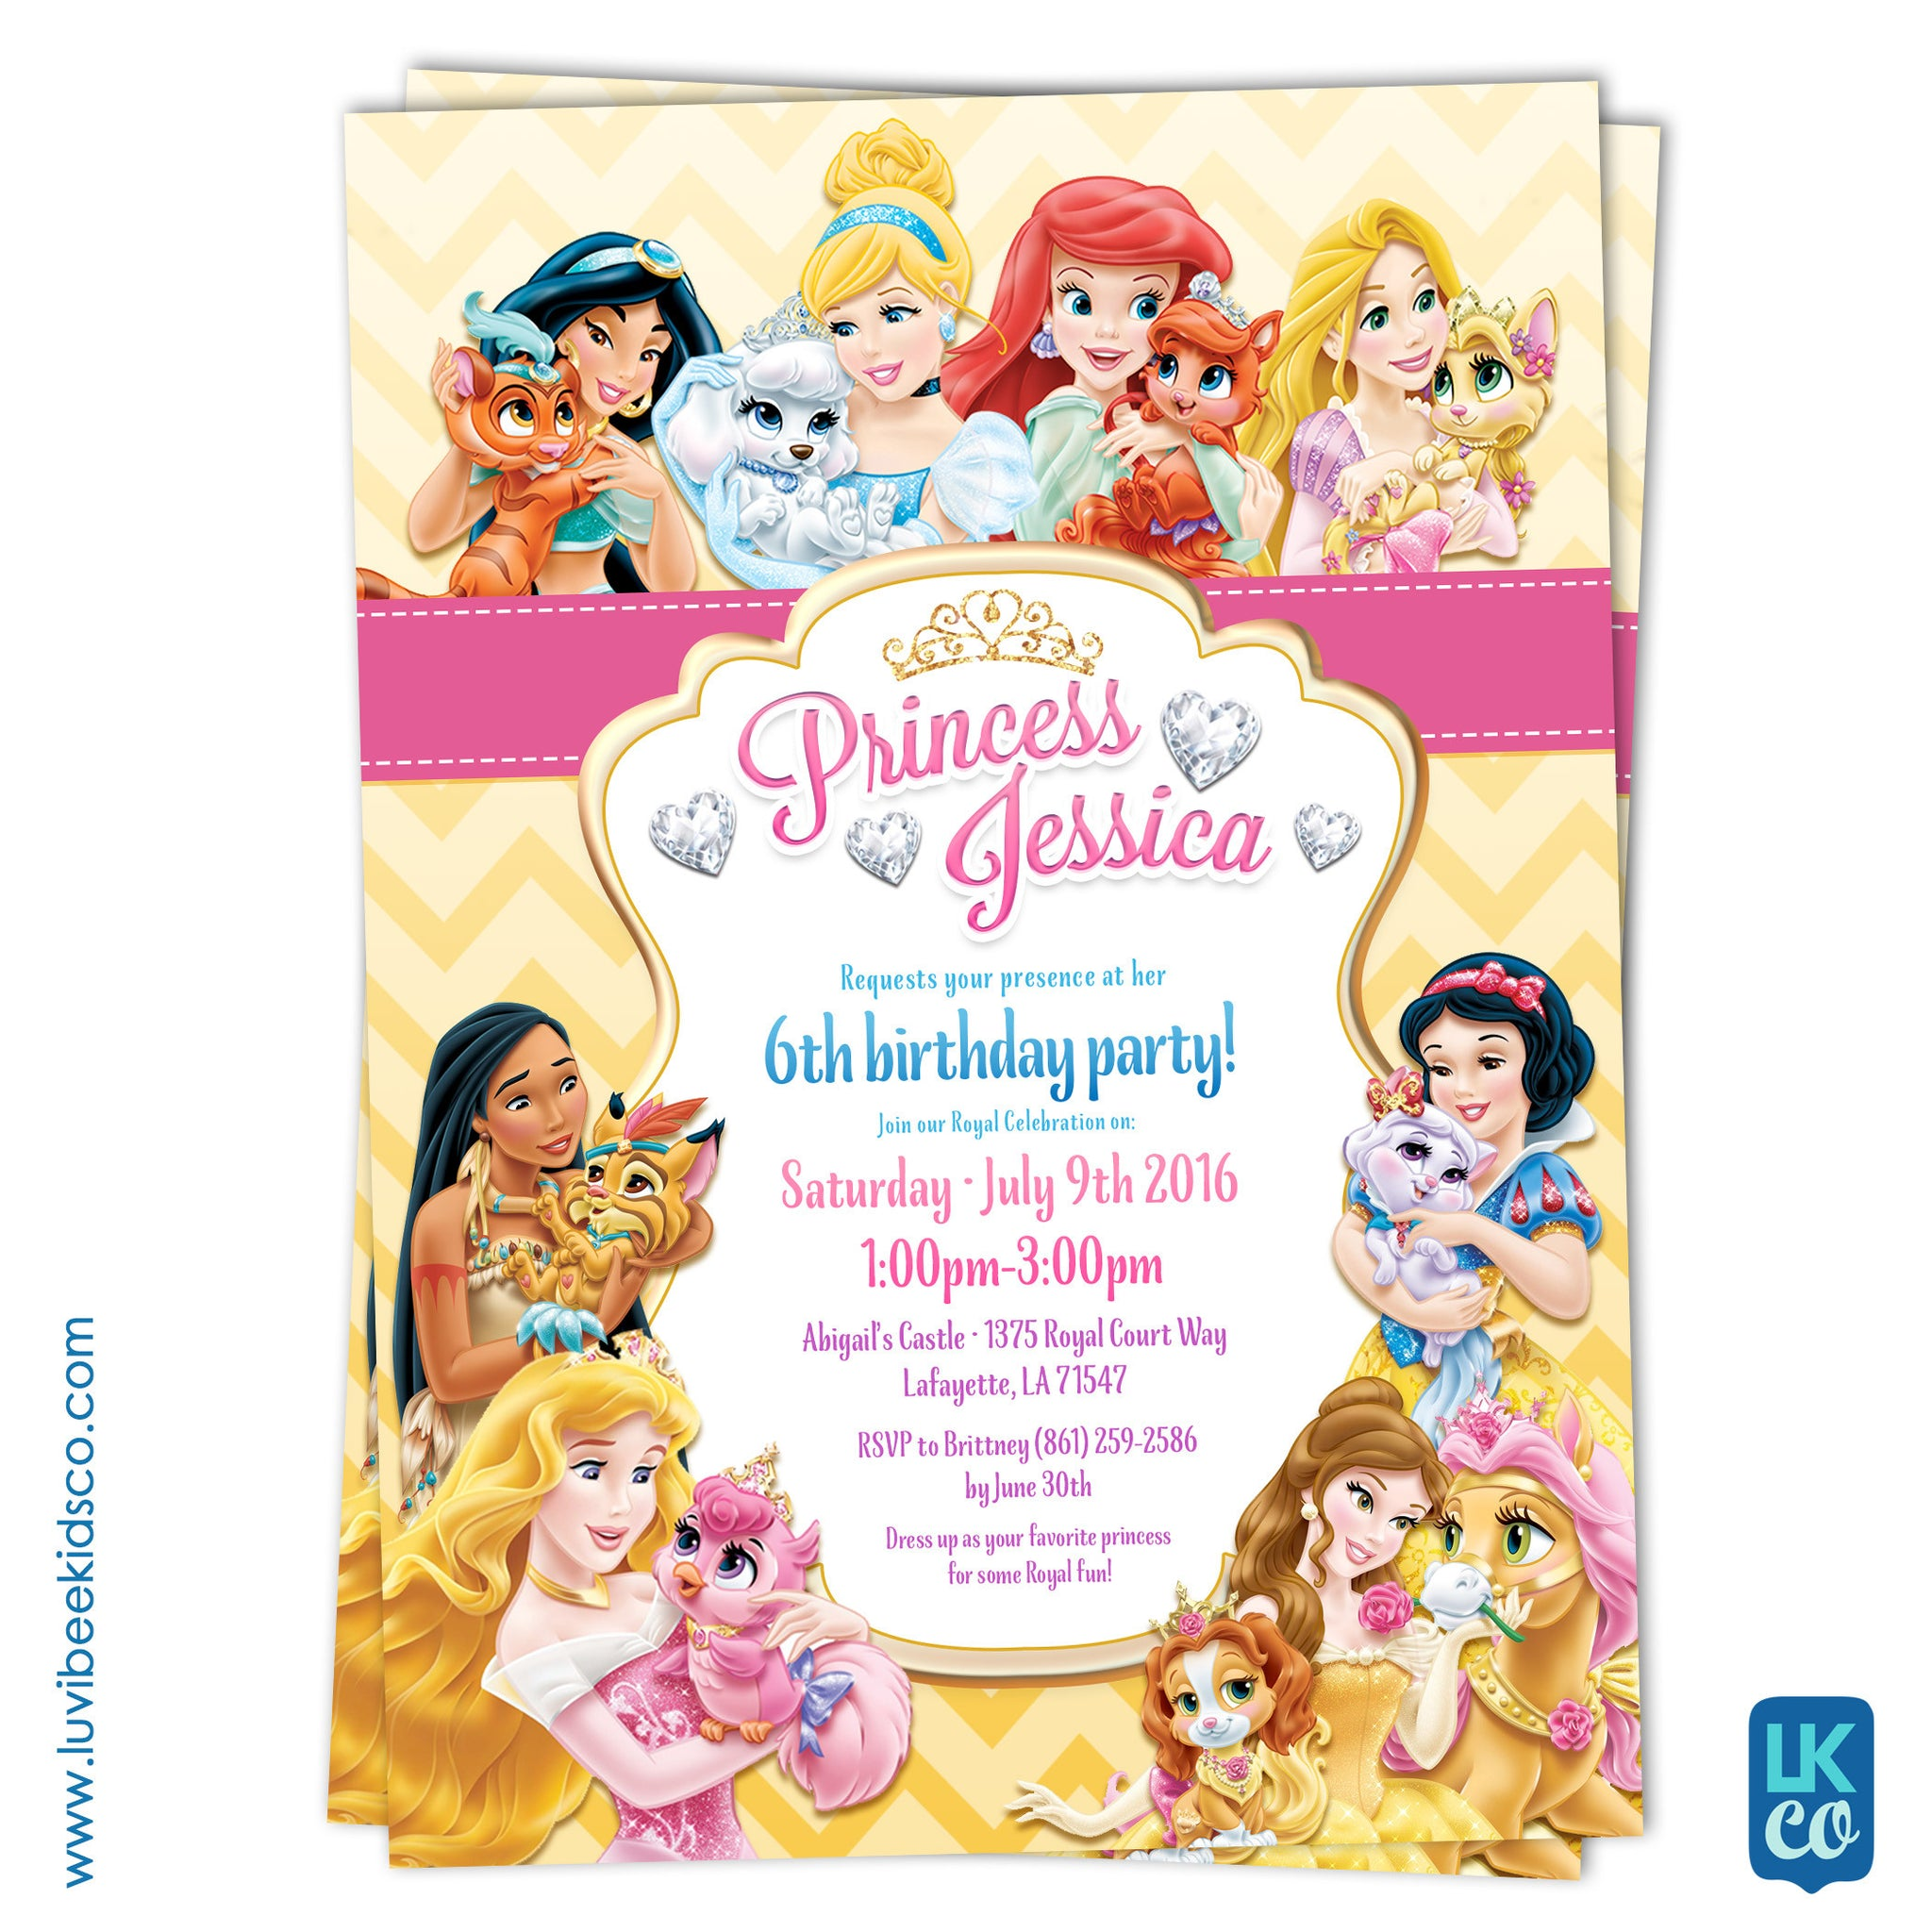 Disney Princess Palace Pets Invitation